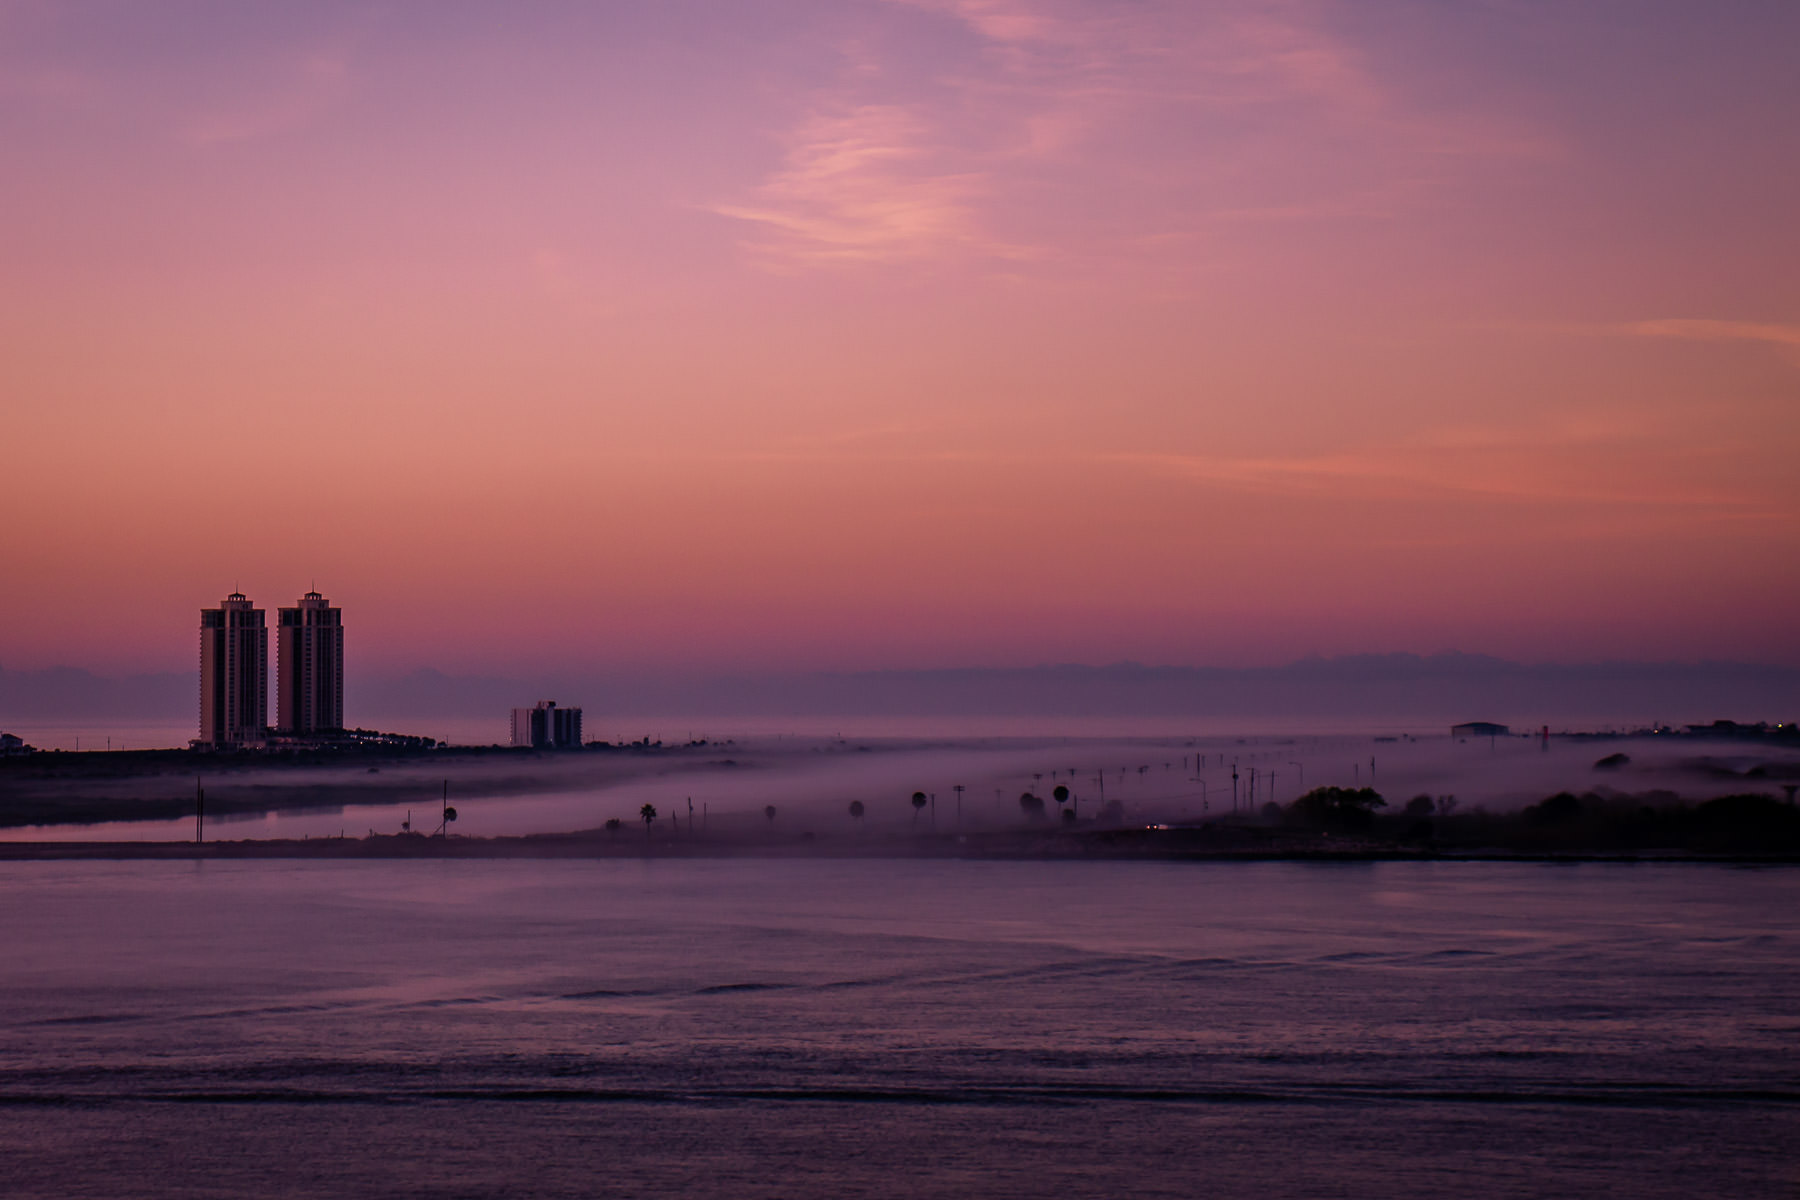 A low fog rolls over the north end of Galveston, Texas, as the first light of morning illuminates the island.